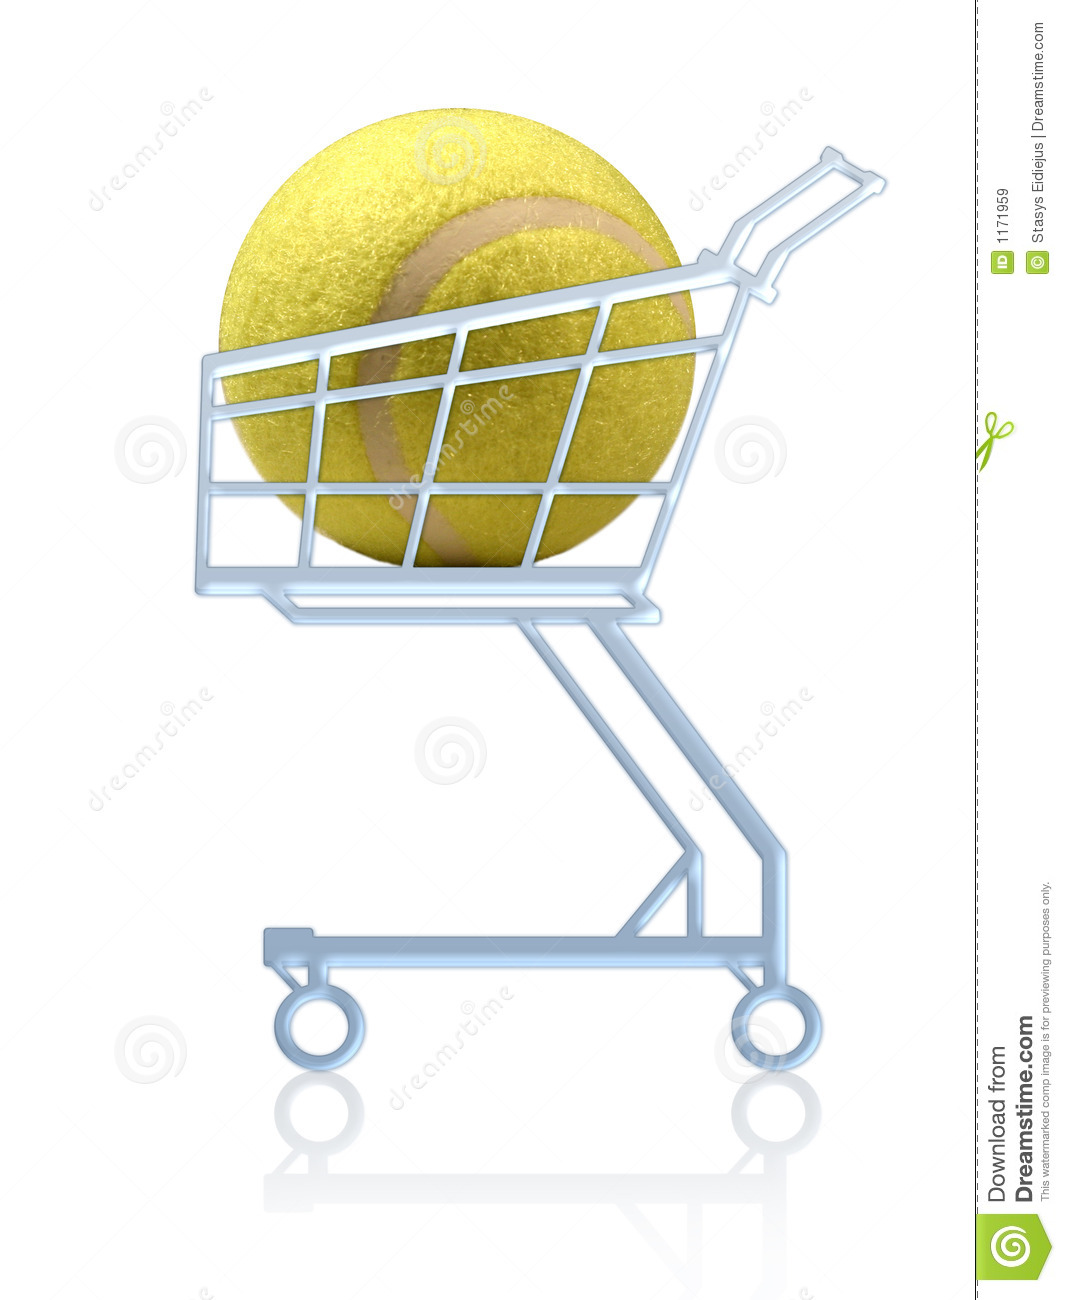 Sports Shopping. Tennis Ball In A Shopping Cart Stock Image - Image ... 1d059777a